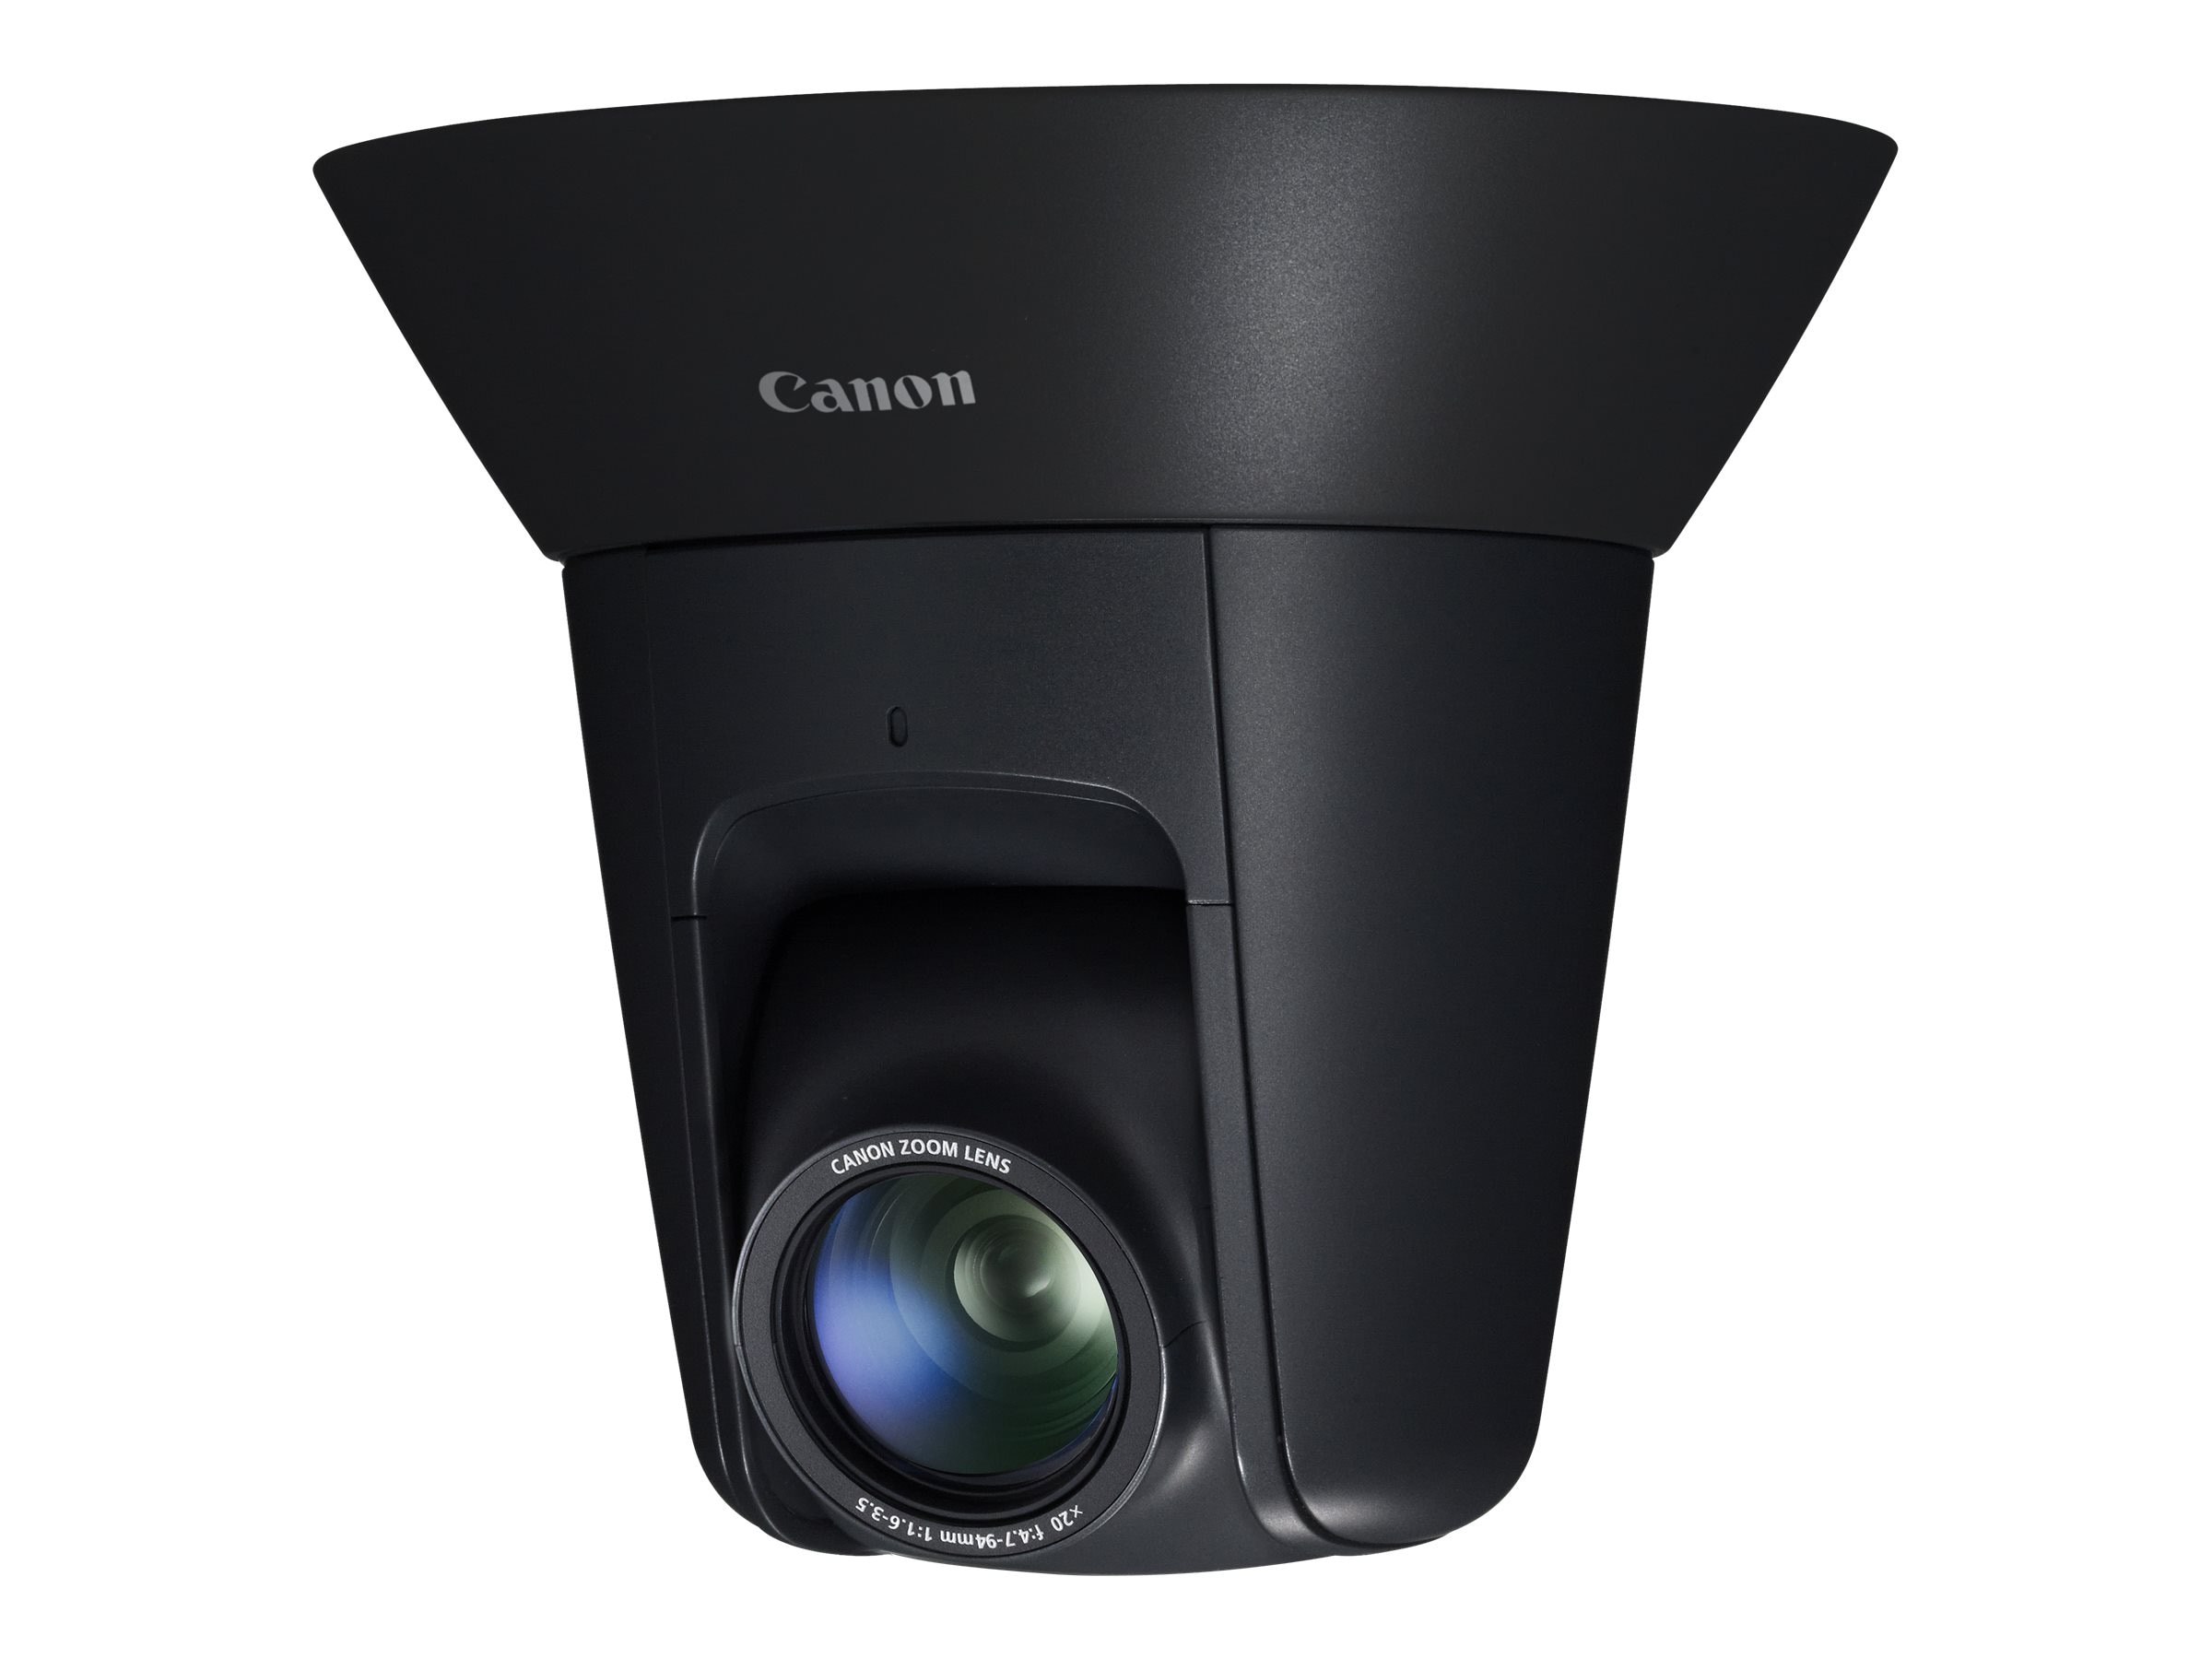 Canon VB-H43 2.1 MP Day Night PoE PTZ Network Camera with 4.7 to 94mm Varifocal Lens